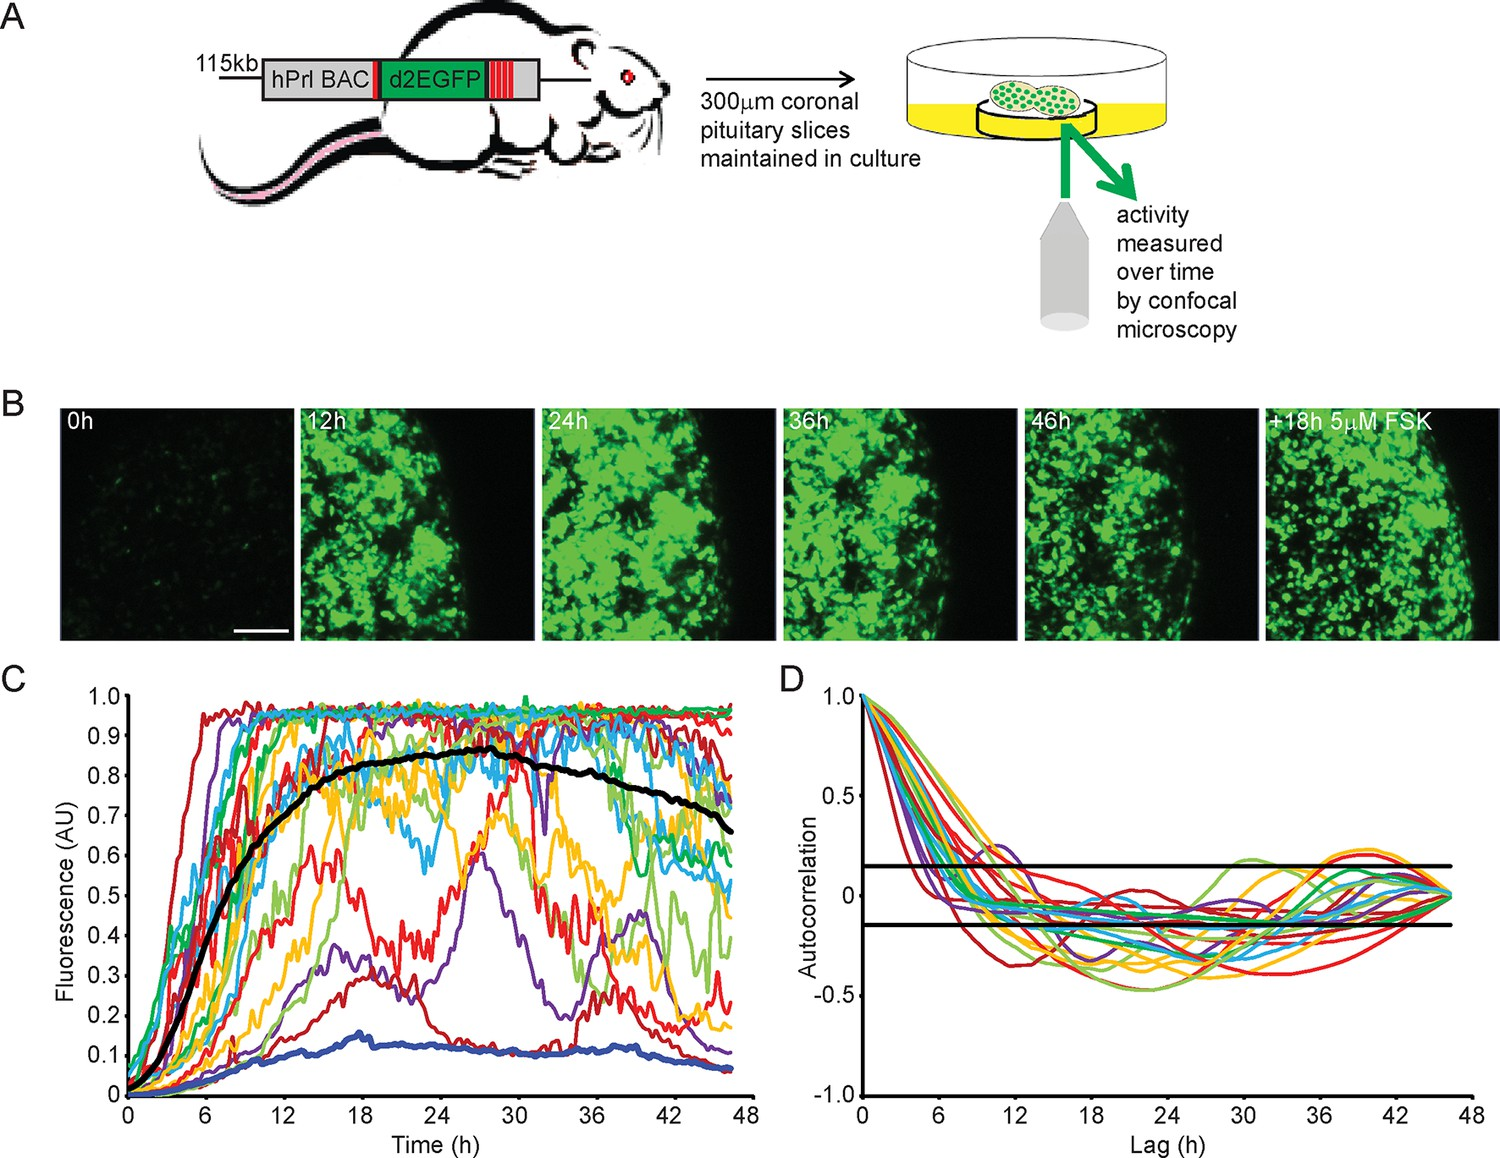 Spatially Coordinated Dynamic Gene Transcription In Living Pituitary Text Transcribed For Accessibility Given A Parallel Electric Circuit Patterns Of Prolactin Activity Tissue